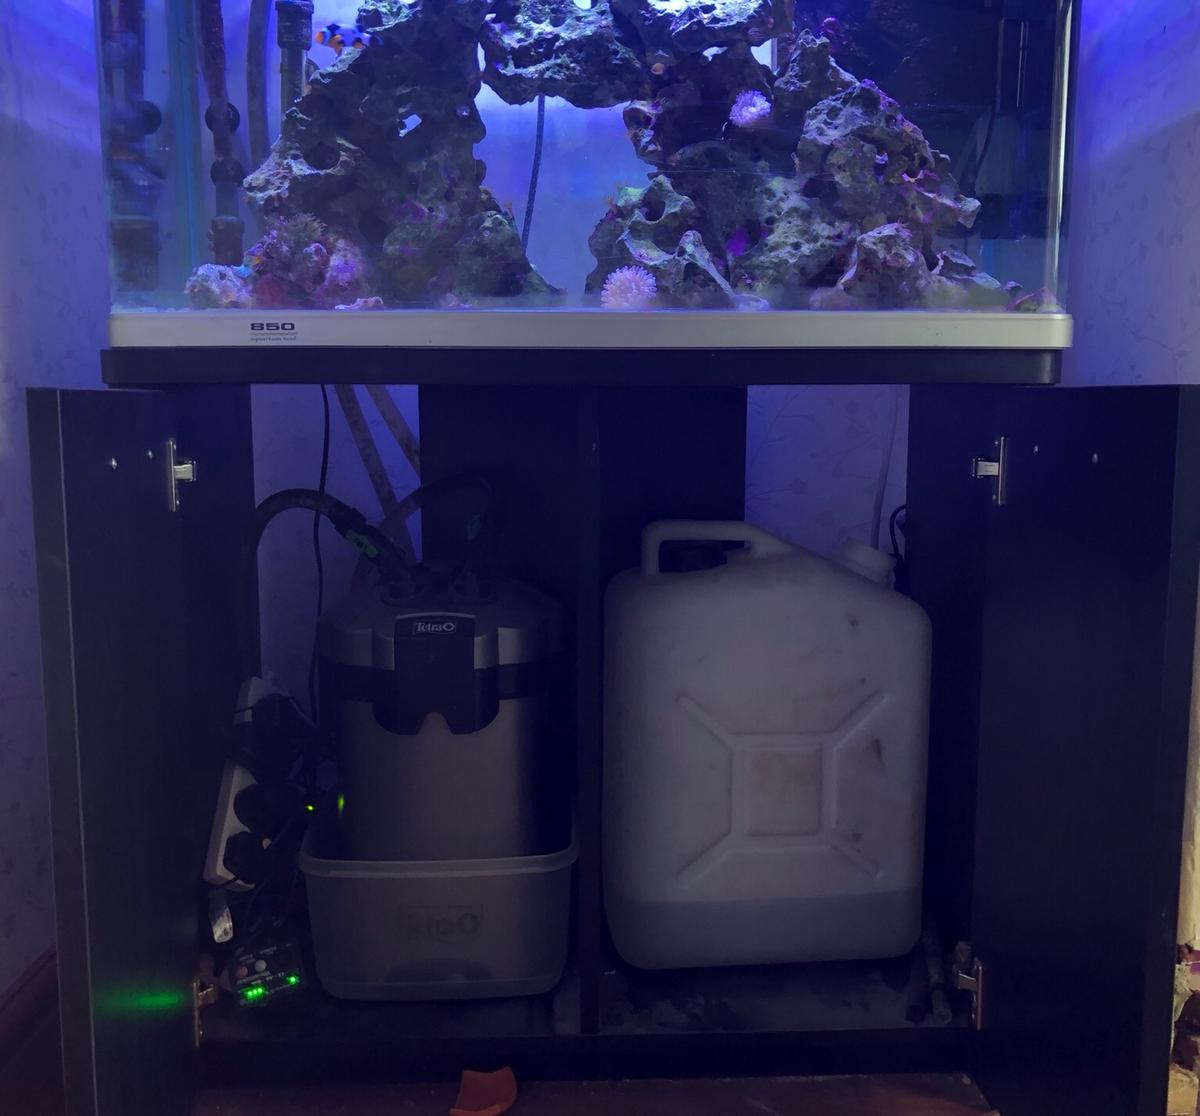 Full Marine fish tank set up in CW2 Crewe for £230 00 for